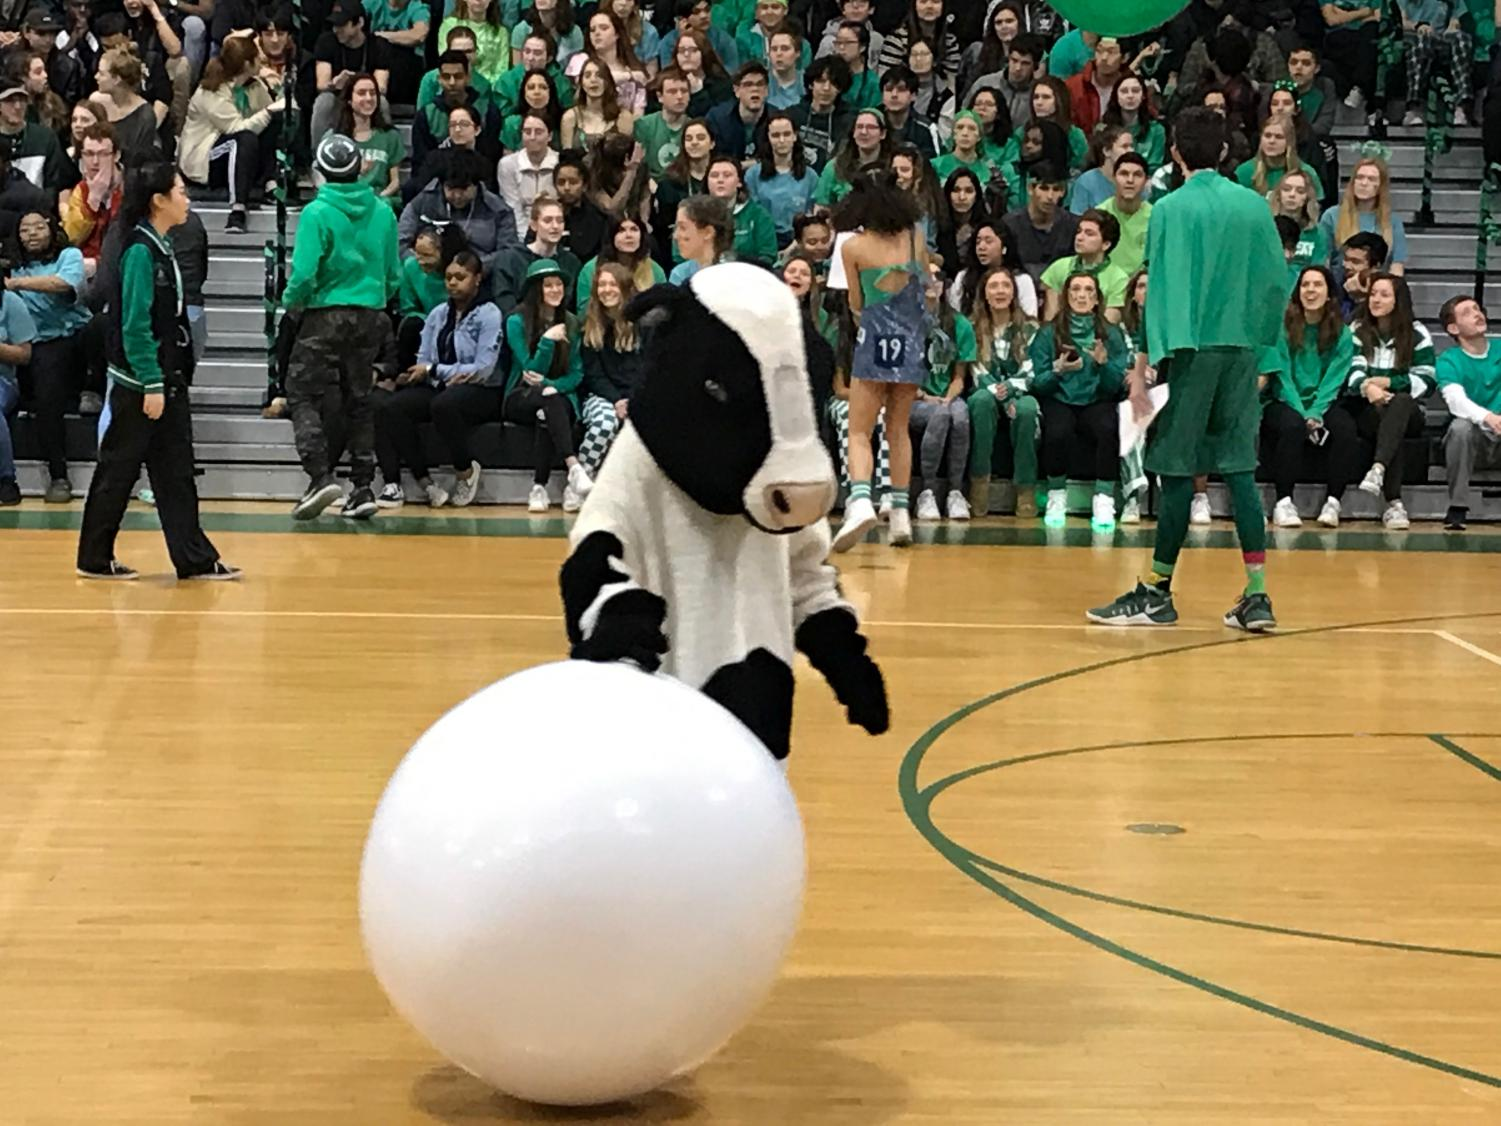 Shelly the Mad Cow at a recent pep rally. As she looks down, she decides to contemplate why she ever thought some of her life choices were good ideas.